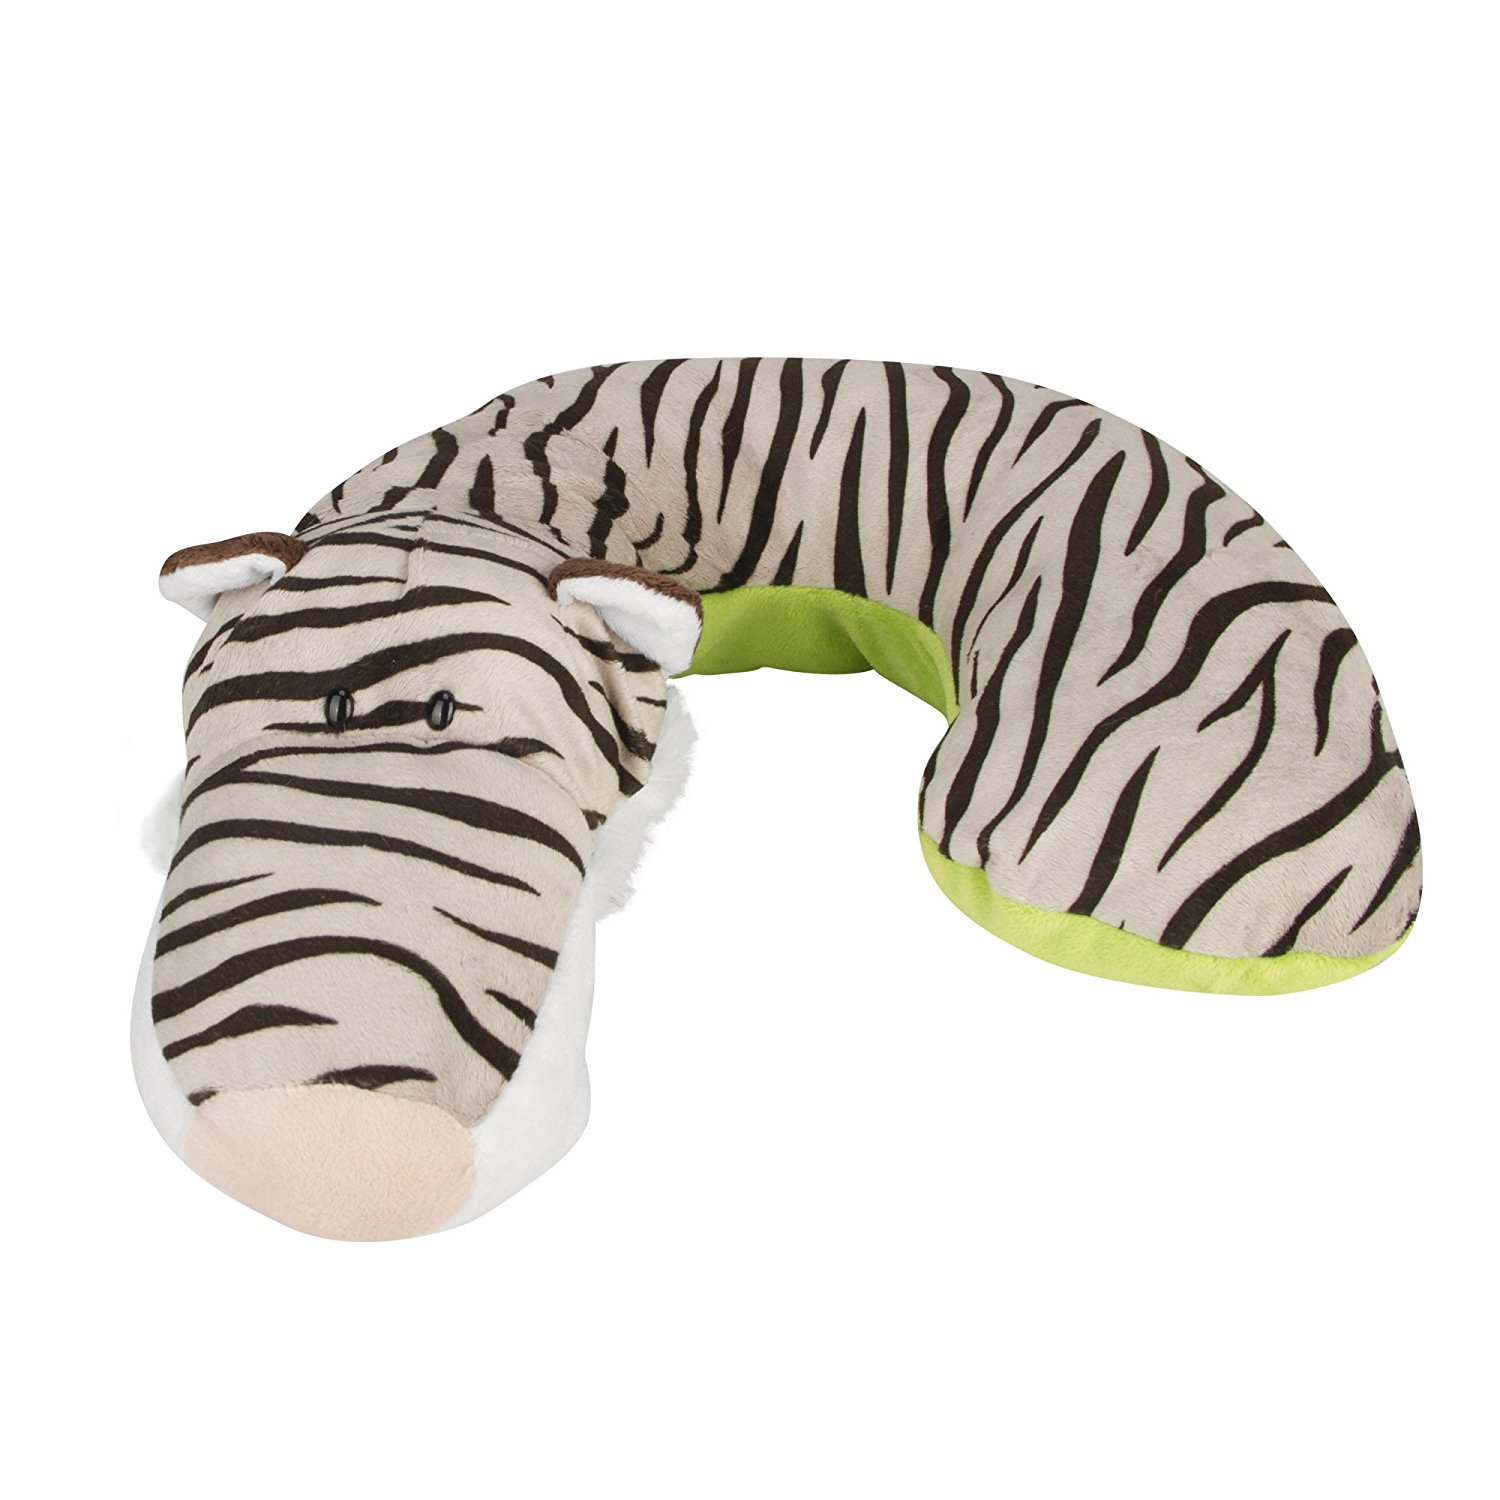 Kid's Neck Support Pillow, White Tiger, Toddler Car Seat Pillow, Baby Head Support, Child Travel By Animal... by Animal Planet